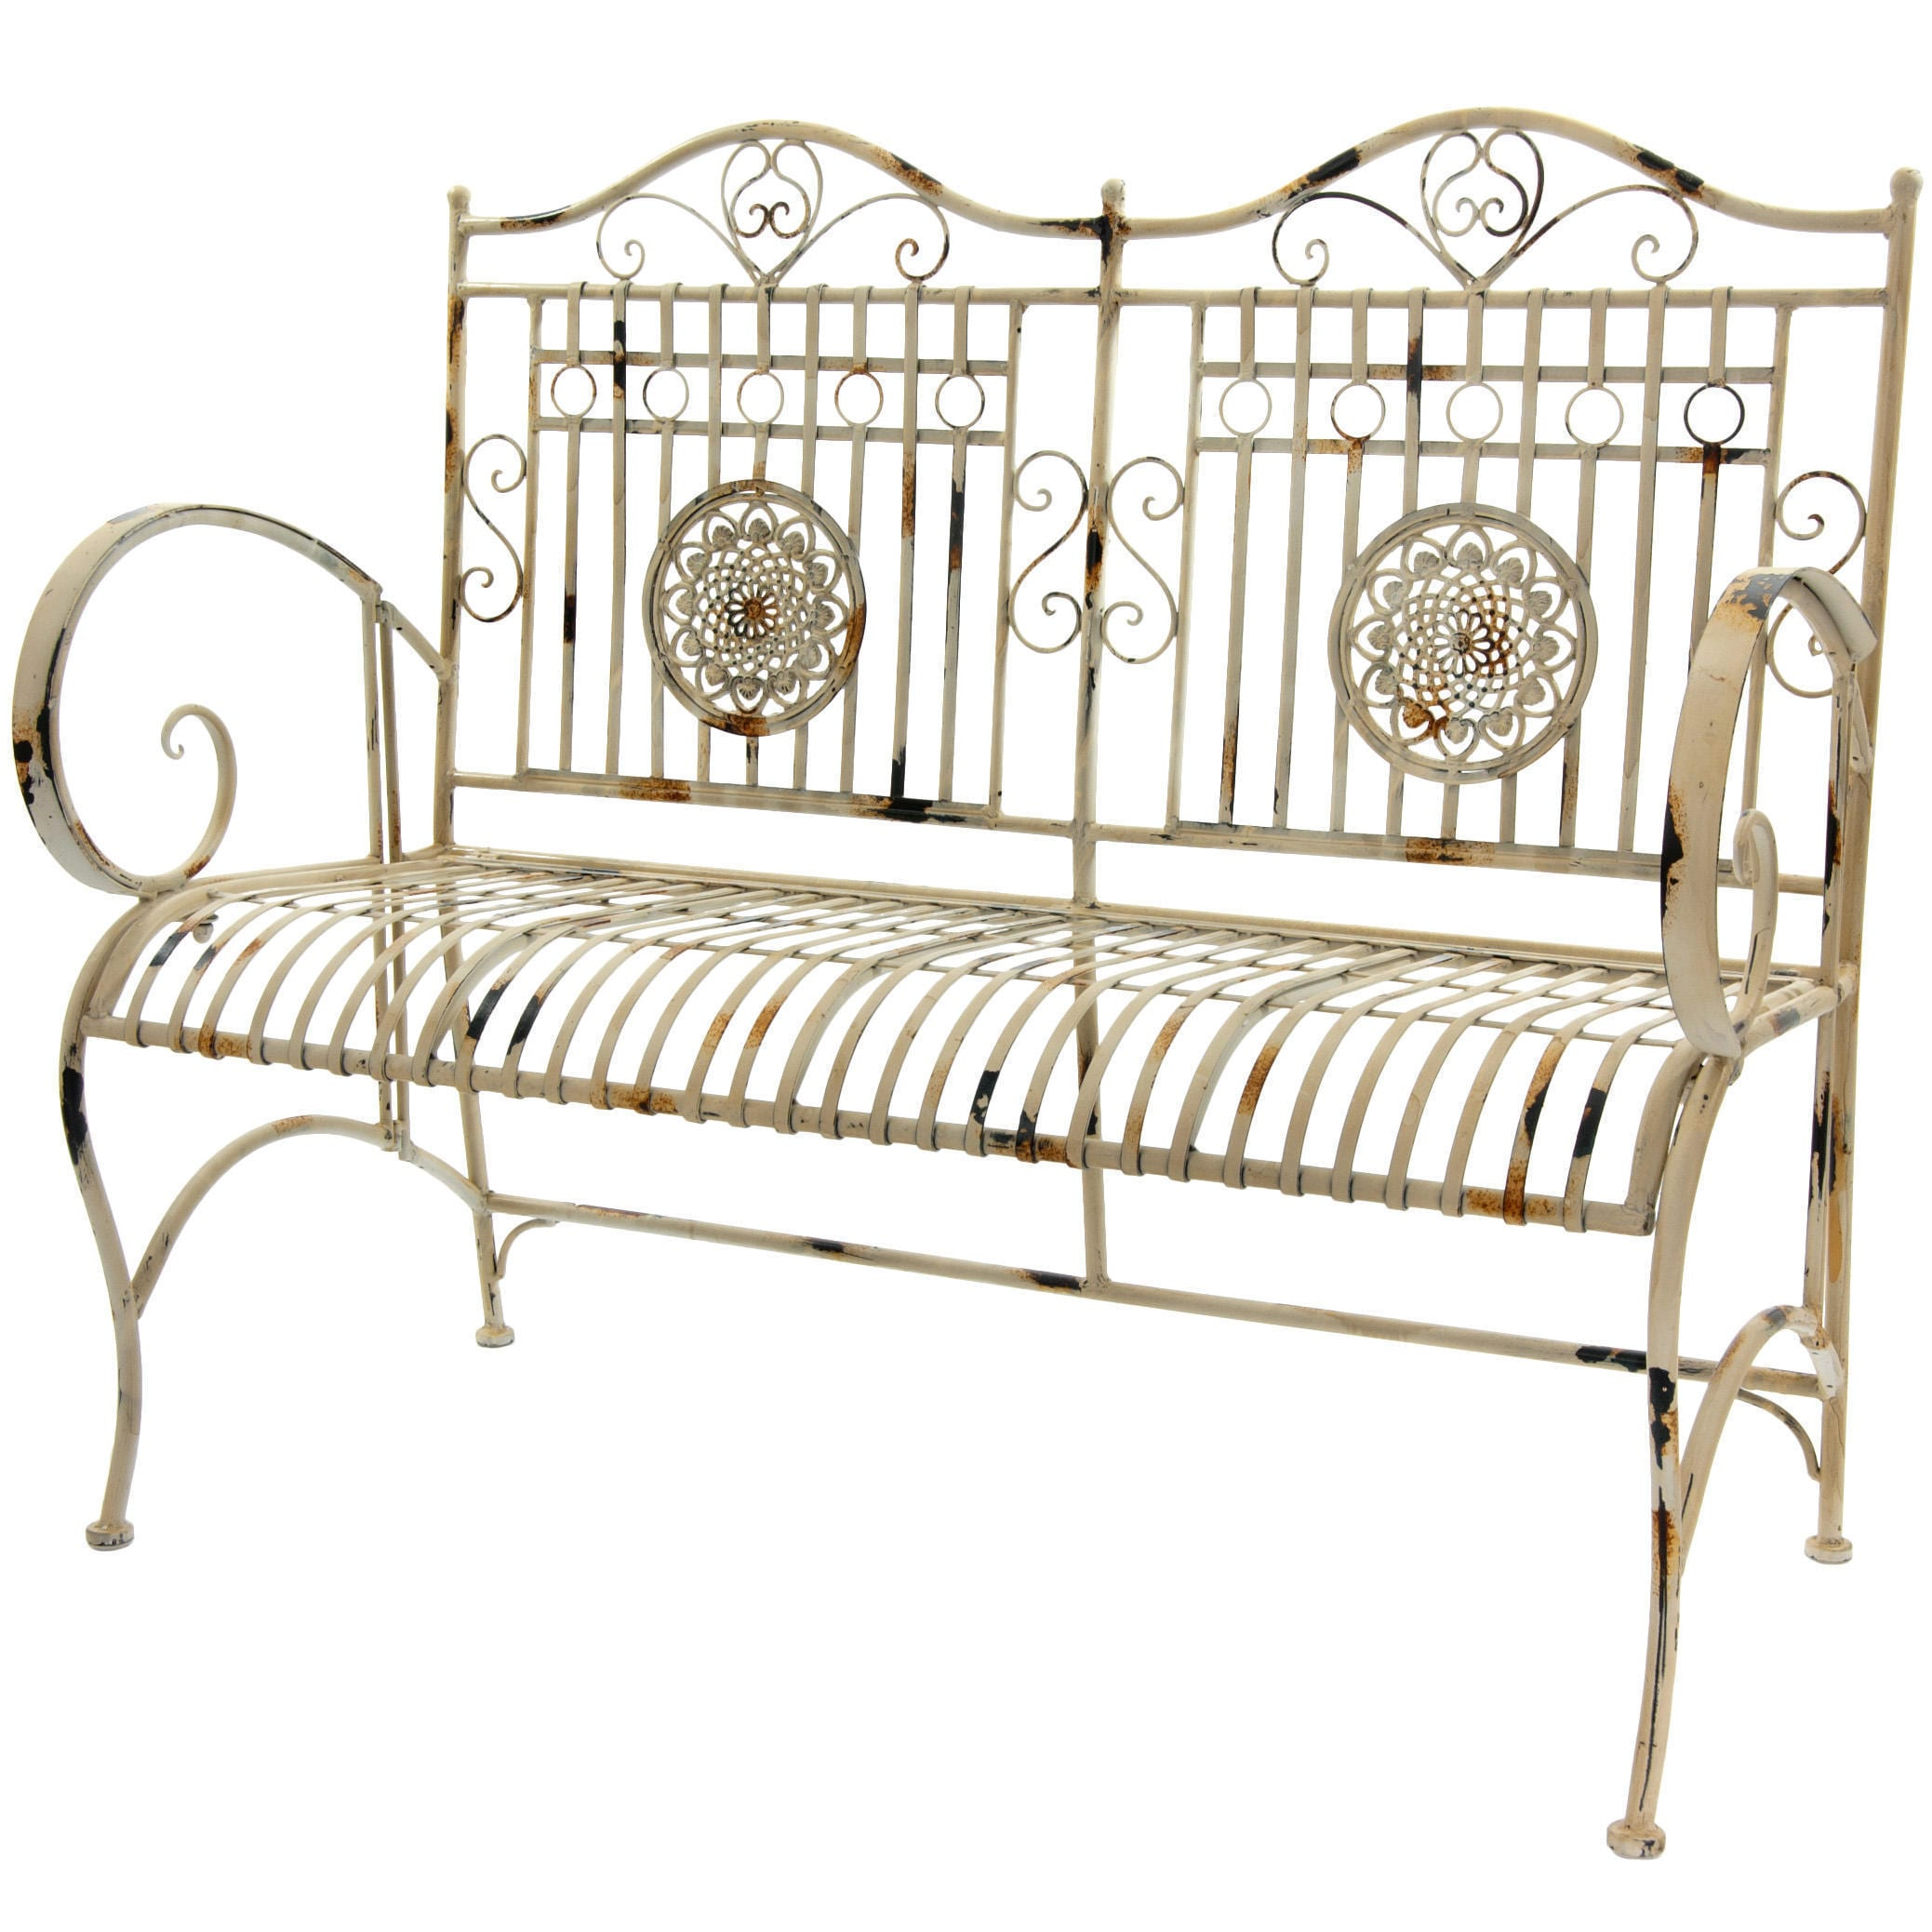 Handmade Distressed White Rustic Metal Garden Bench China